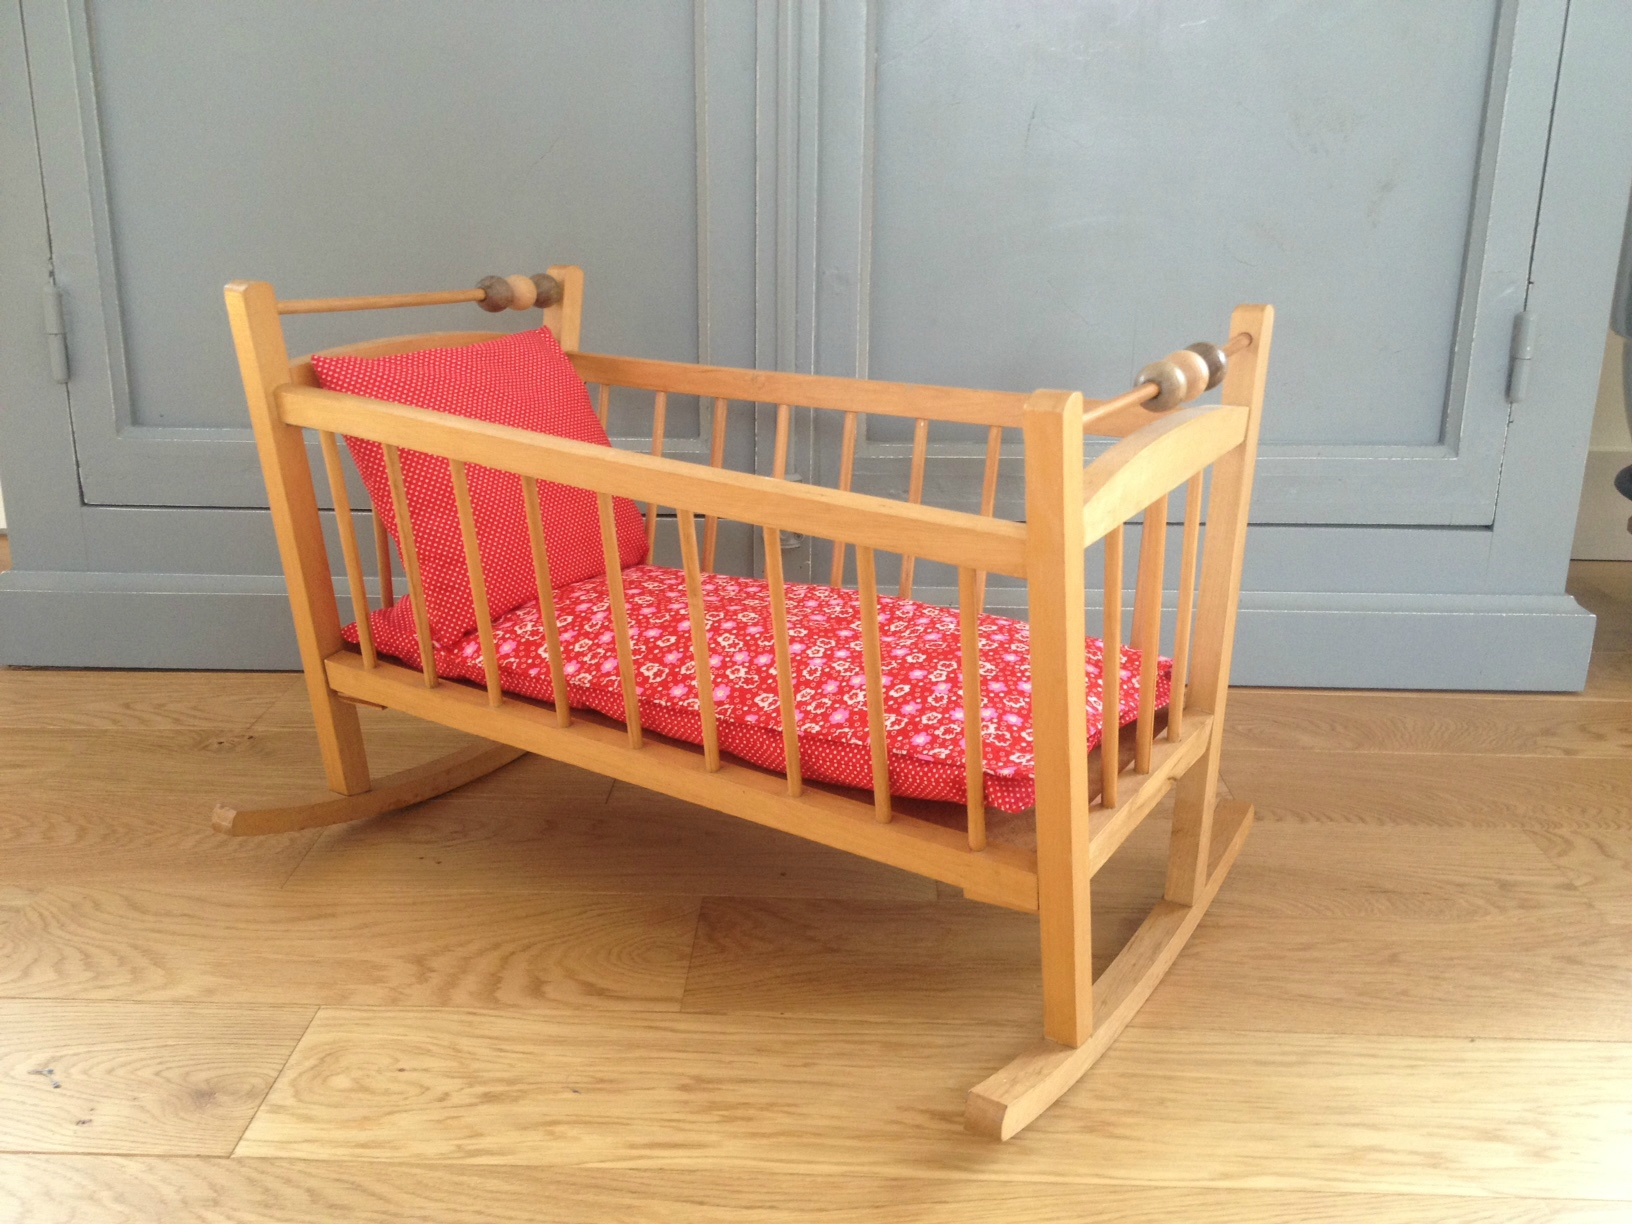 lit de poup e en bois bascule rouge pois la petite factory de julie. Black Bedroom Furniture Sets. Home Design Ideas